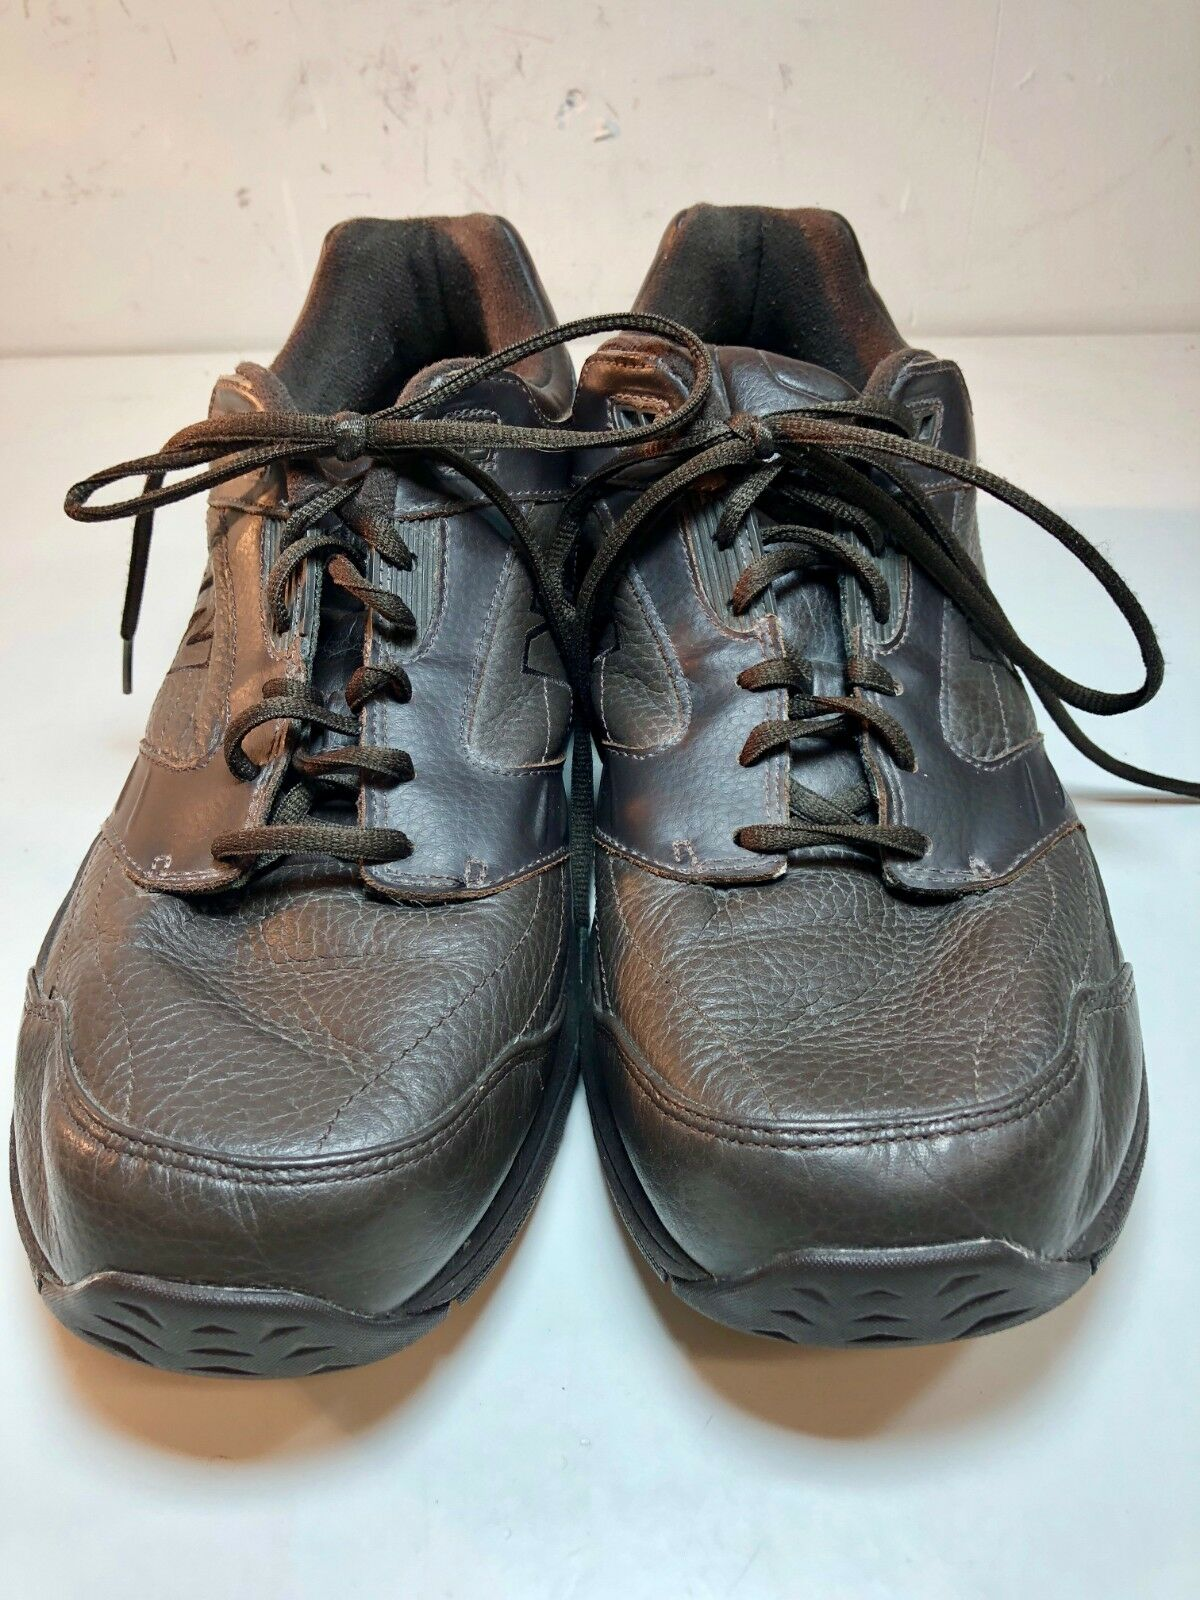 New Balance Mens 926 Brown Leather Walking shoes Sneakers Abzorb SBS Size 13 EE